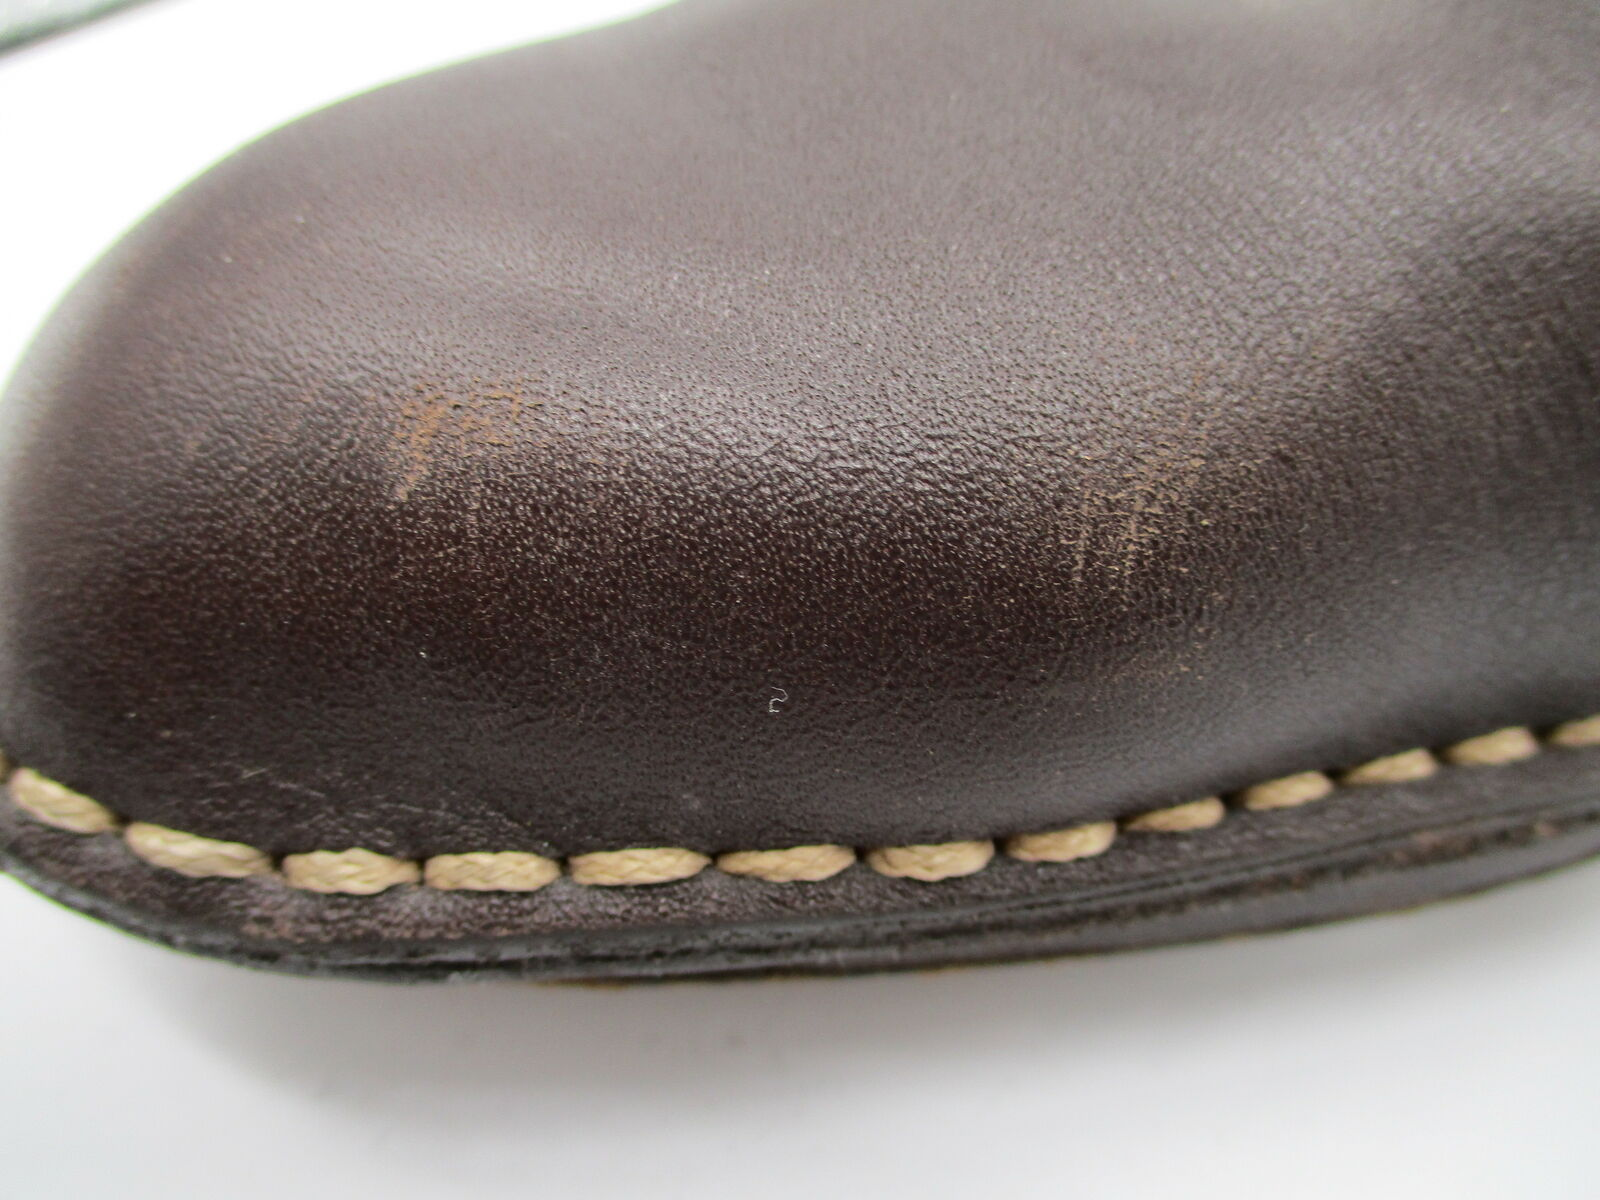 TODS brown leather block heel mules sz 40.5 - image 8